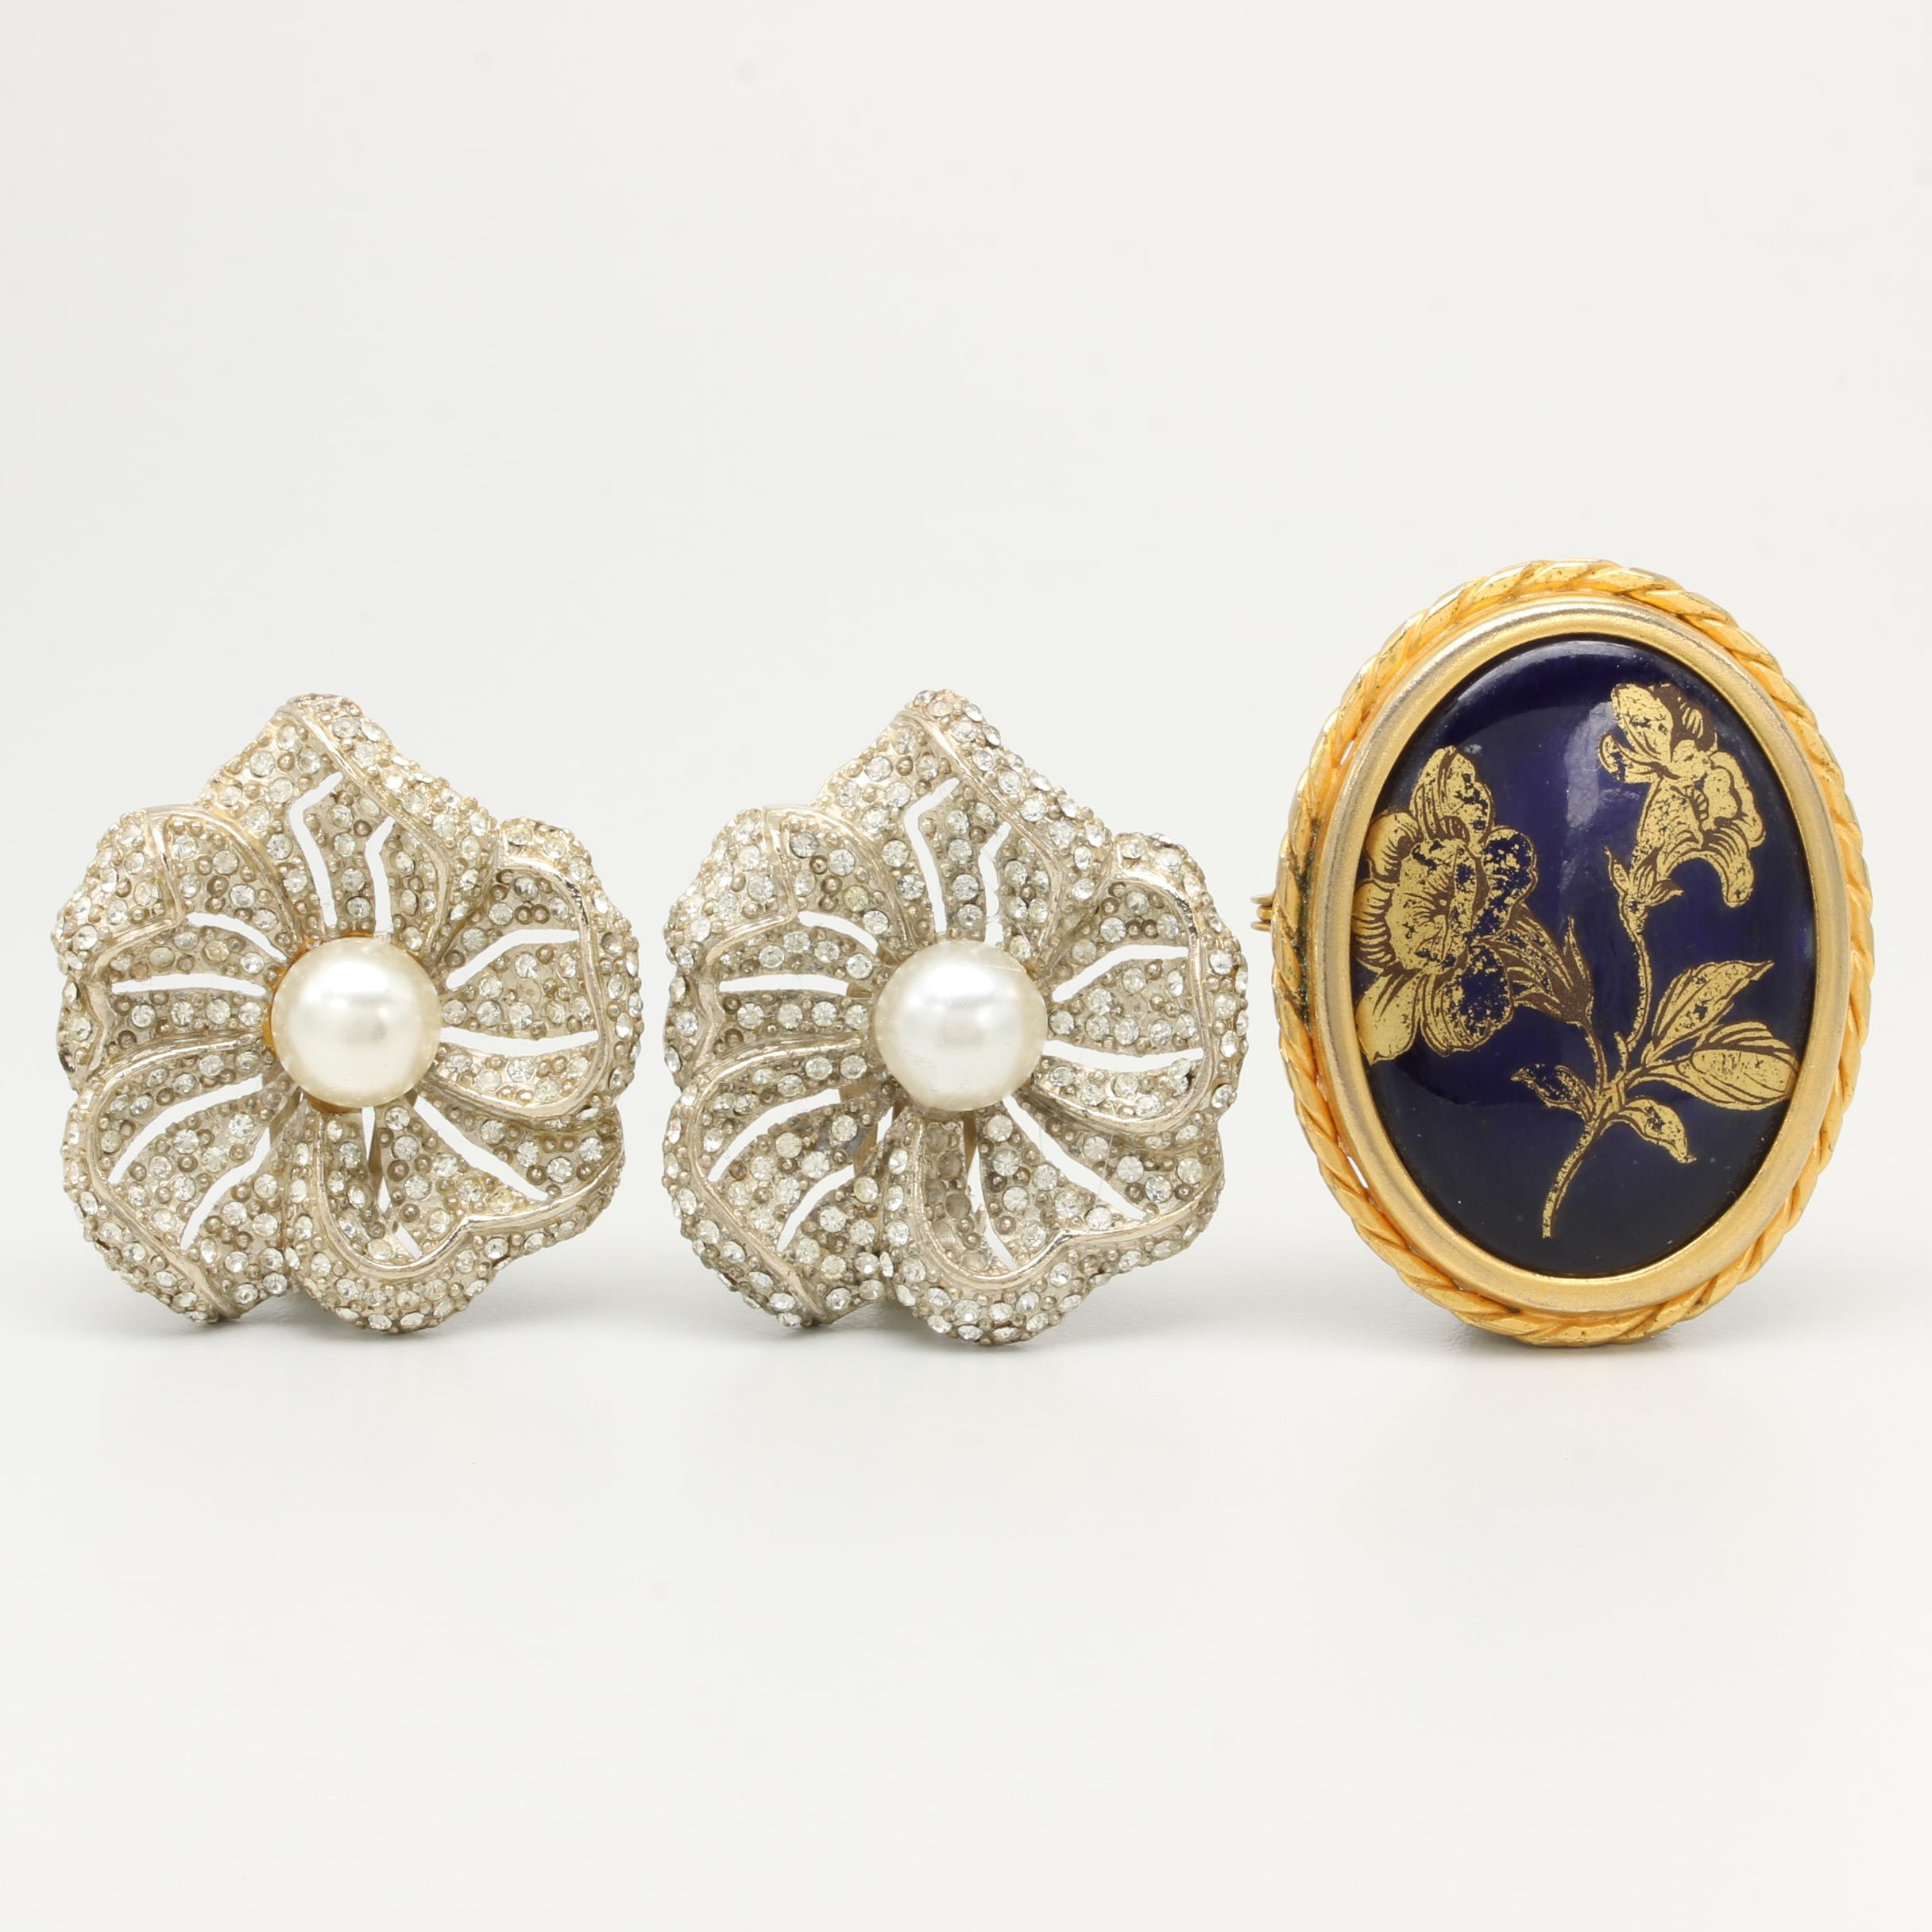 Costume Foilback, Imitation Pearl and Porcelain Earrings and Brooch